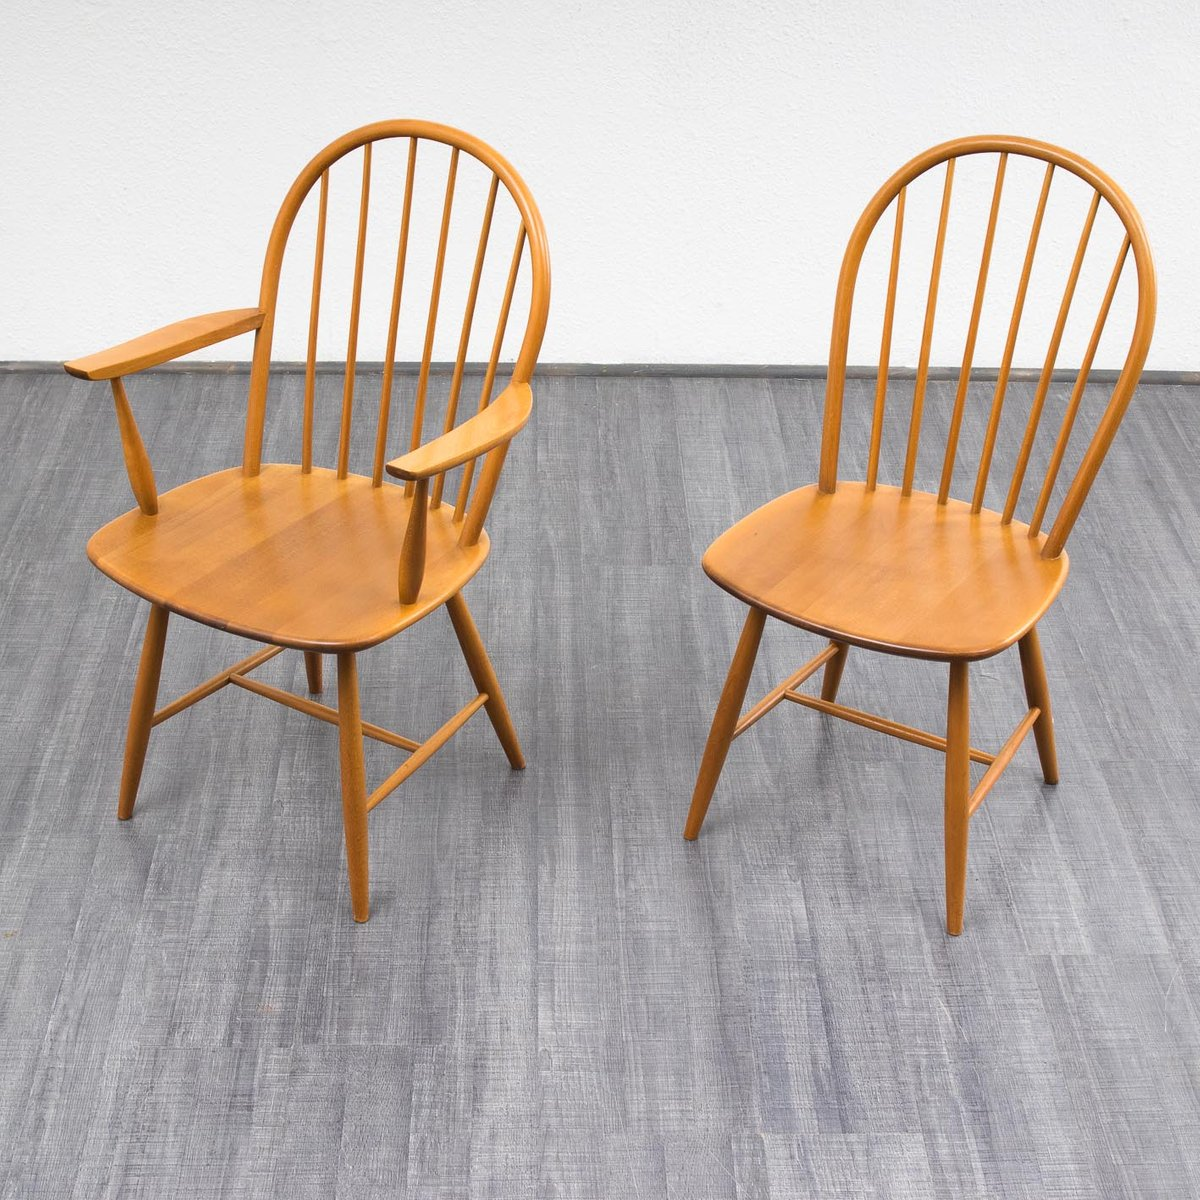 Vintage Beech Wood Dining Chairs Set Of 4 For Sale At Pamono